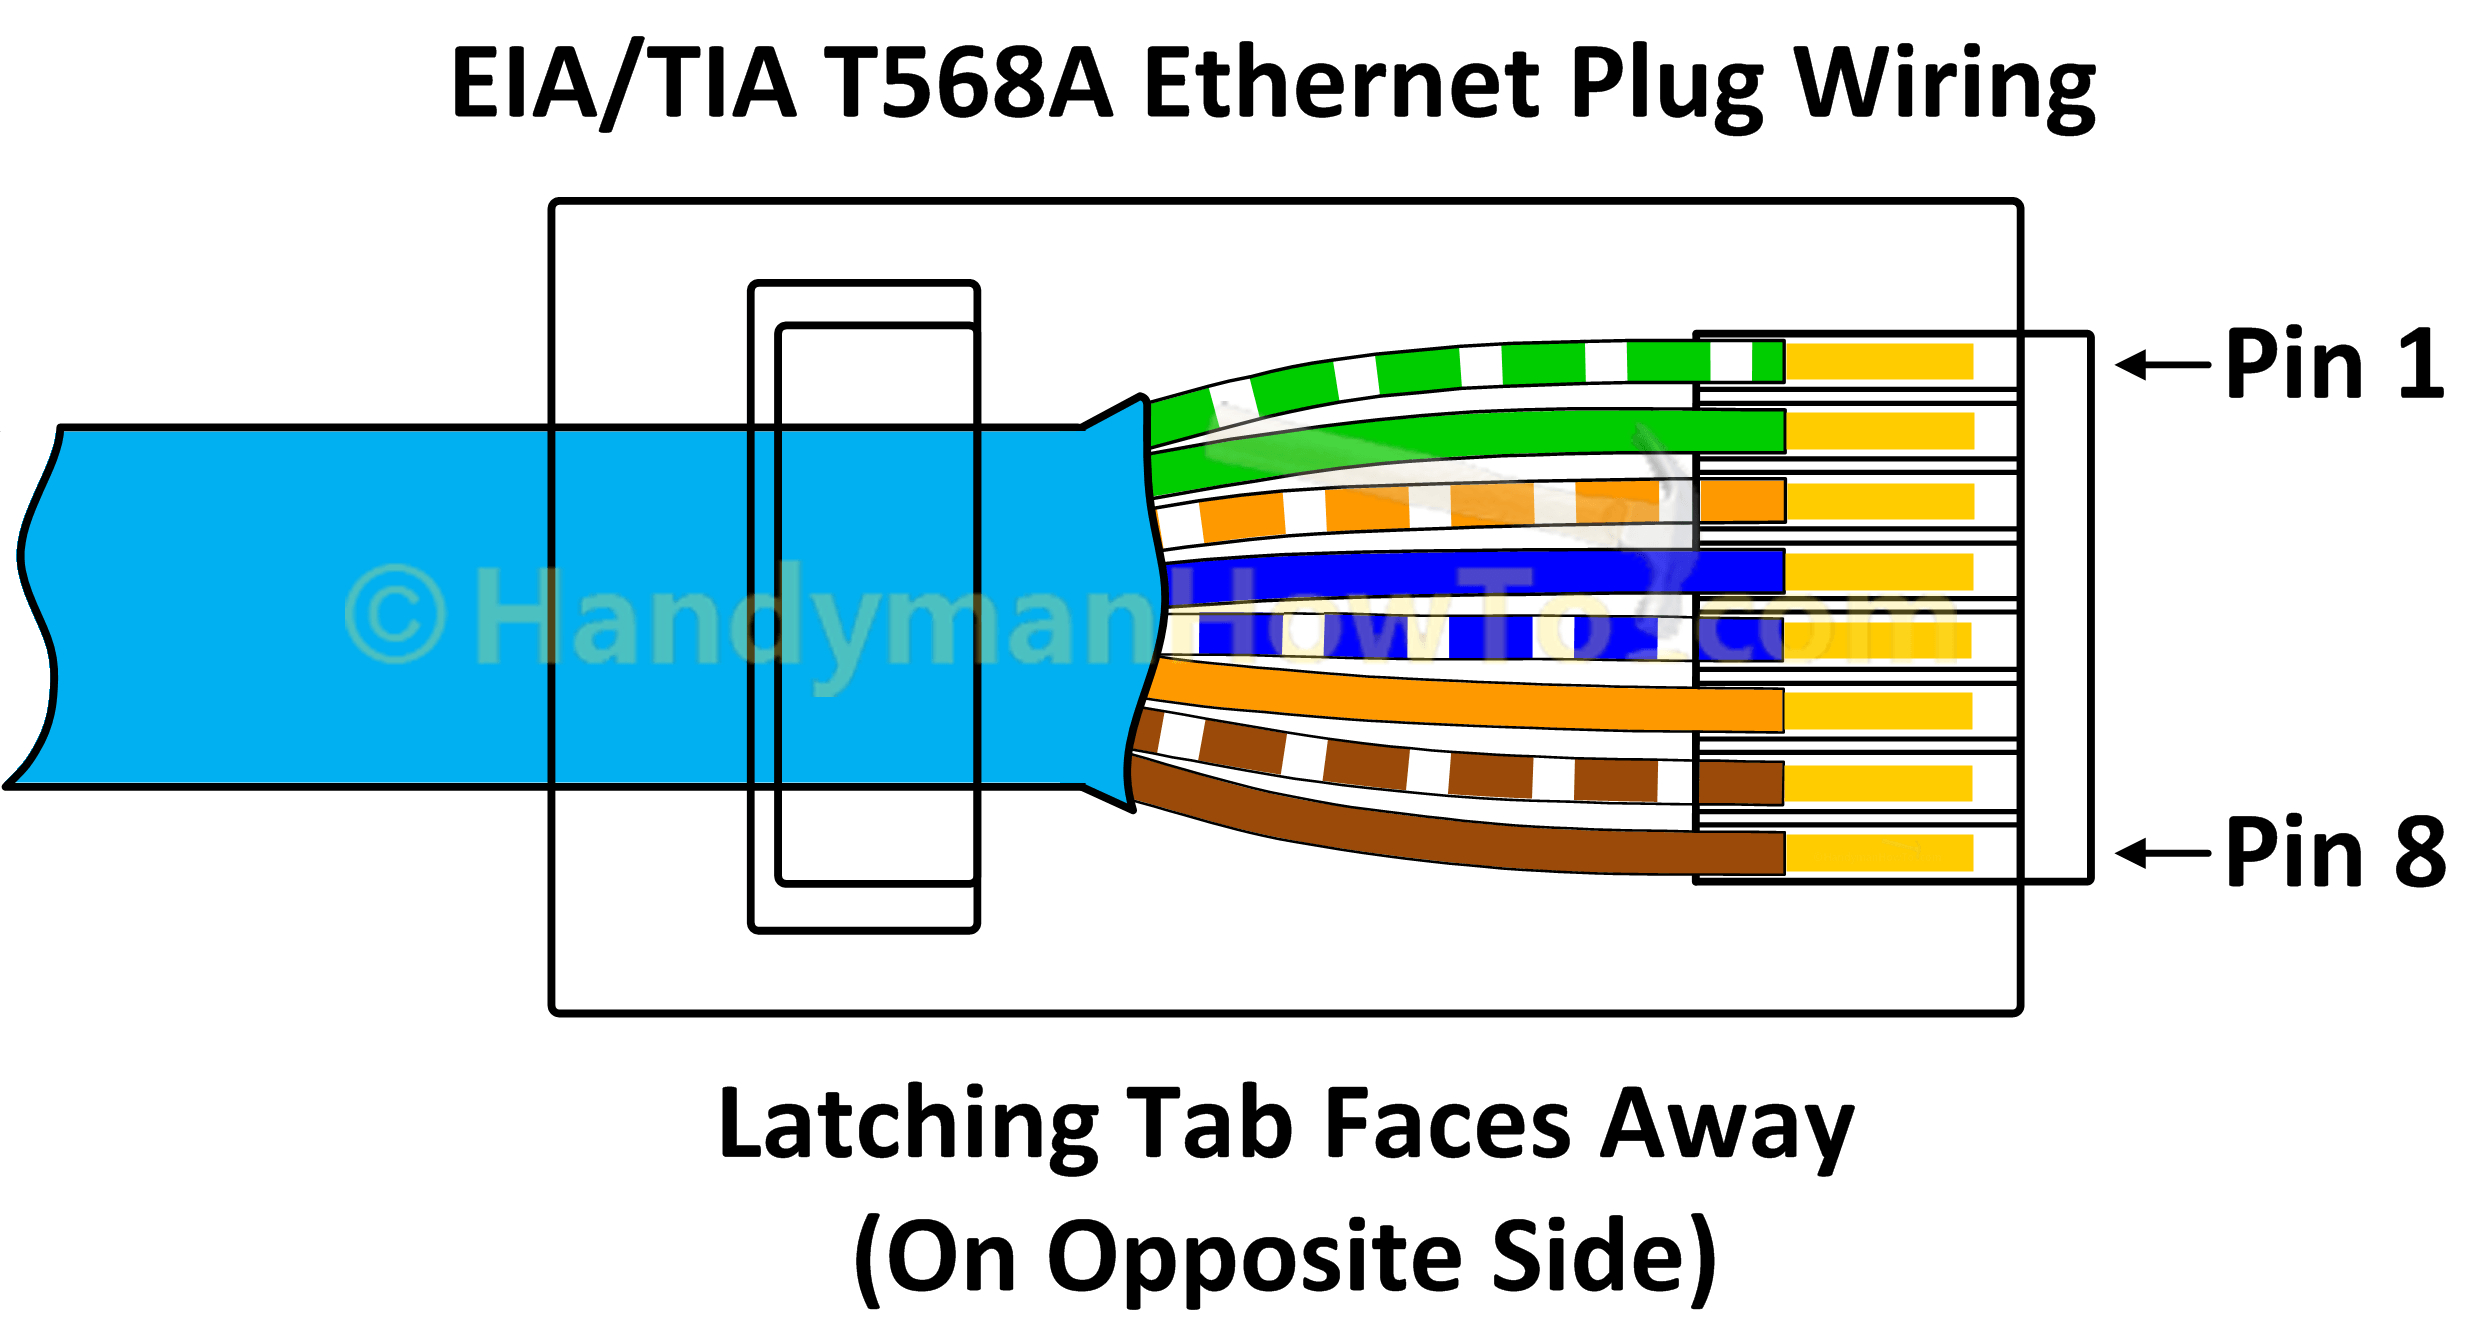 Cat6 Vs Cat5E Wiring Pinout - Wiring Diagram Data - Cat5E Wiring Diagram B